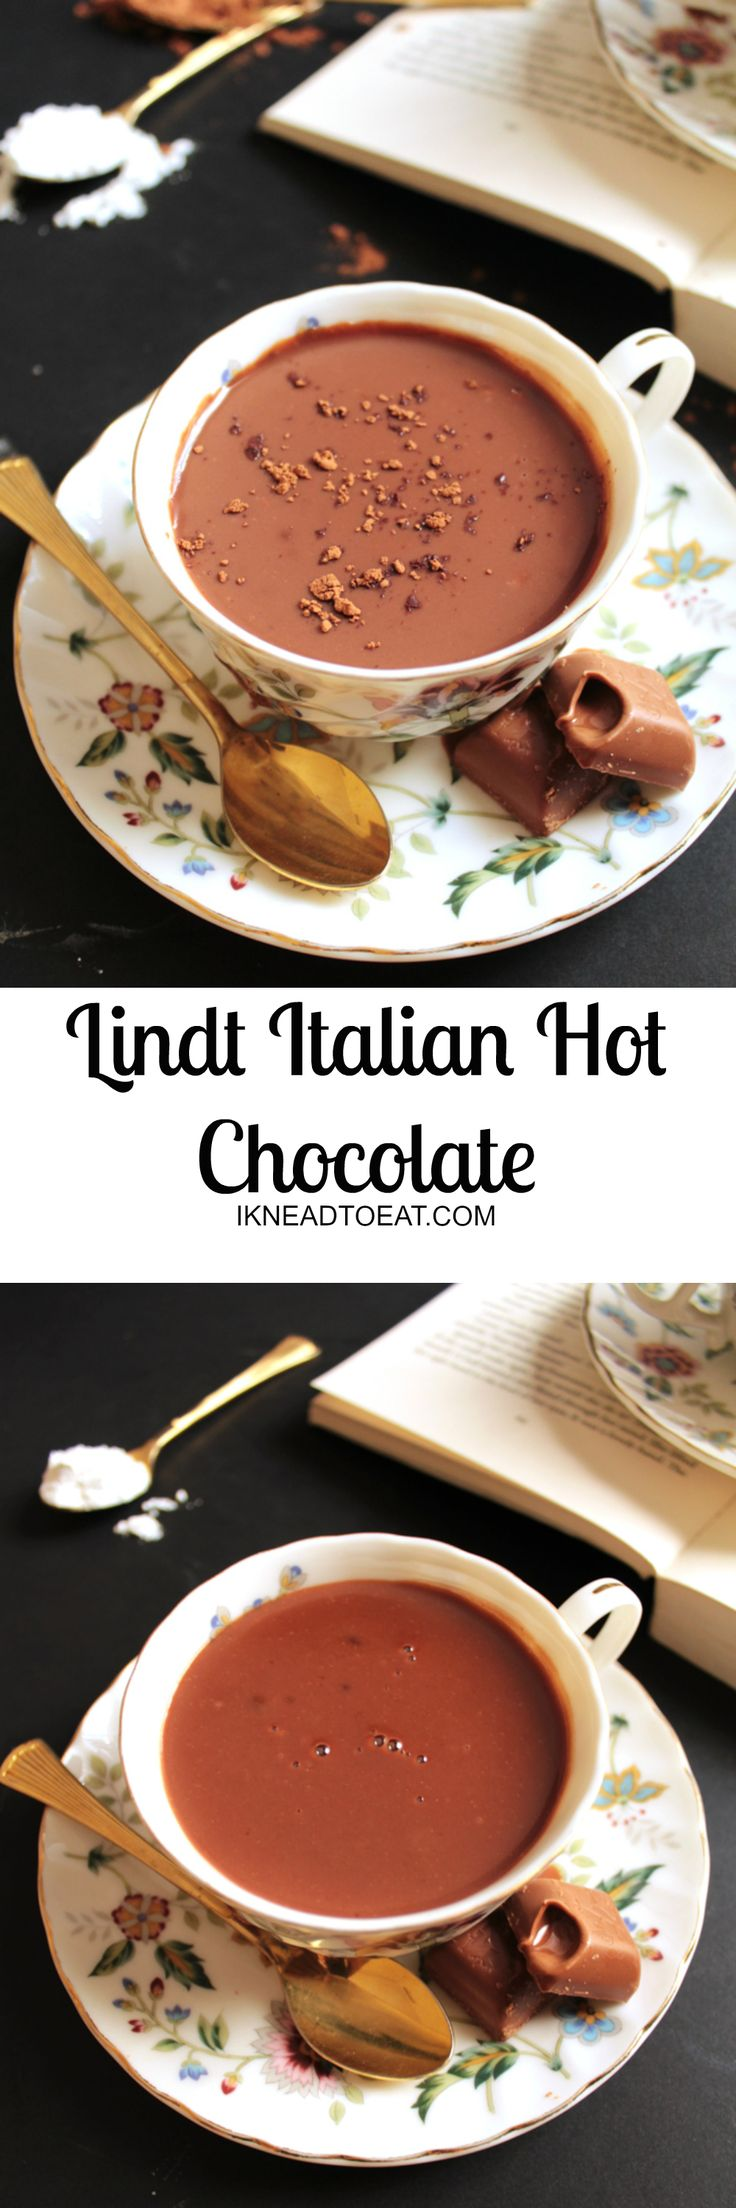 Deliciously thick and creamy Italian hot chocolate ready in just FIVE minutes using only FIVE ingredients. P.S. There's a whole bar of Lindt chocolate in it. Yum!